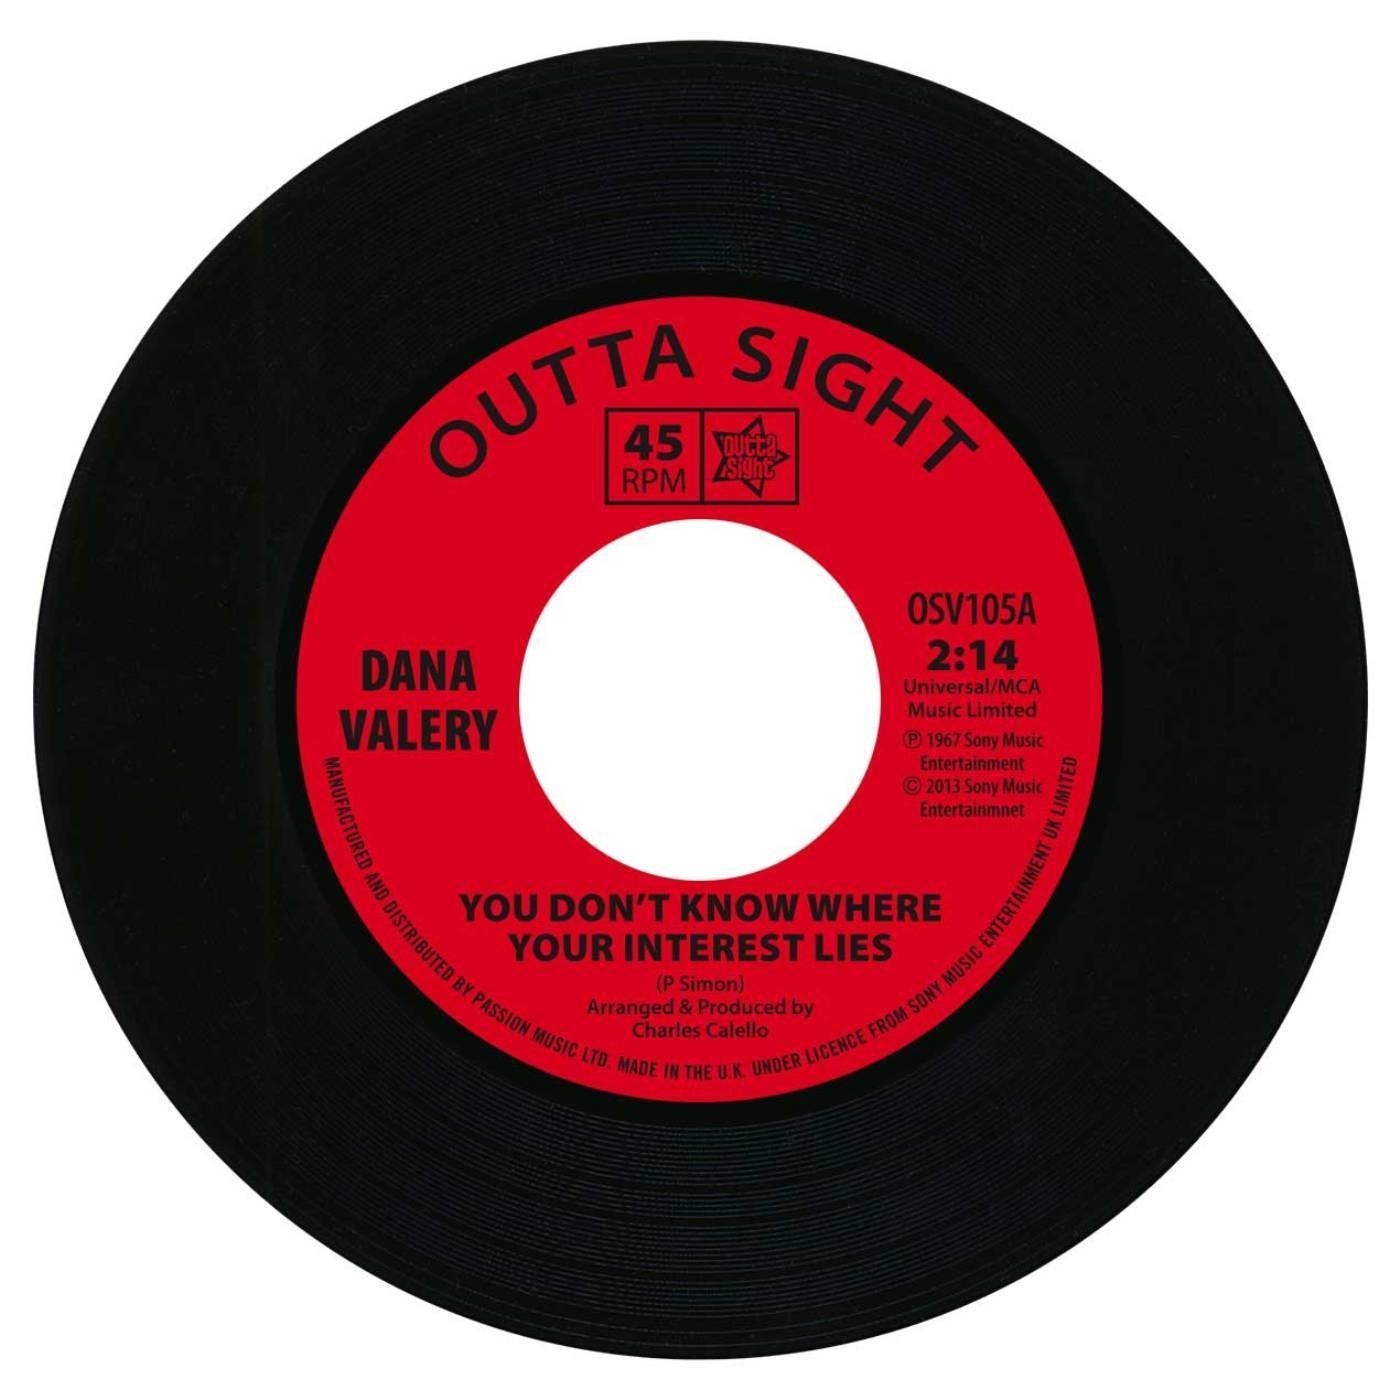 Dana Valery – You Don't Know Where Your Interest Lies 45 (Outta Sight) 7″ Vinyl